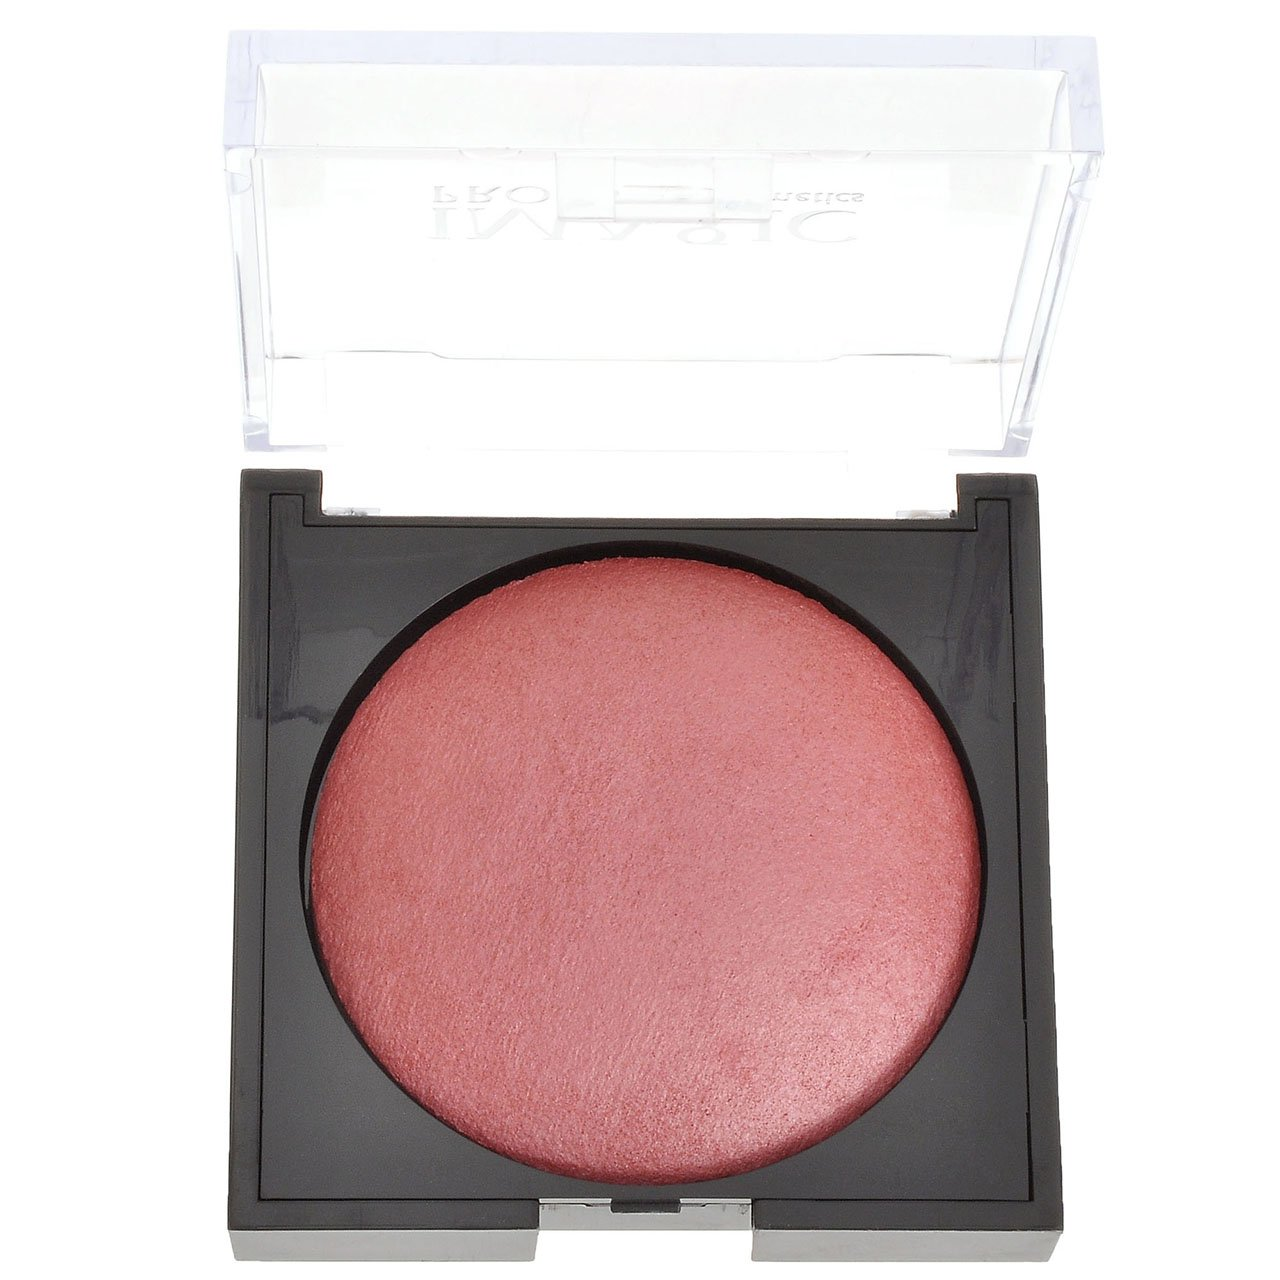 CCbeauty Makeup Blush Palette Rouged Cheeks Blusher Powder Highlighter Blush Contouring Kit, 0.35 Ounce (#4)